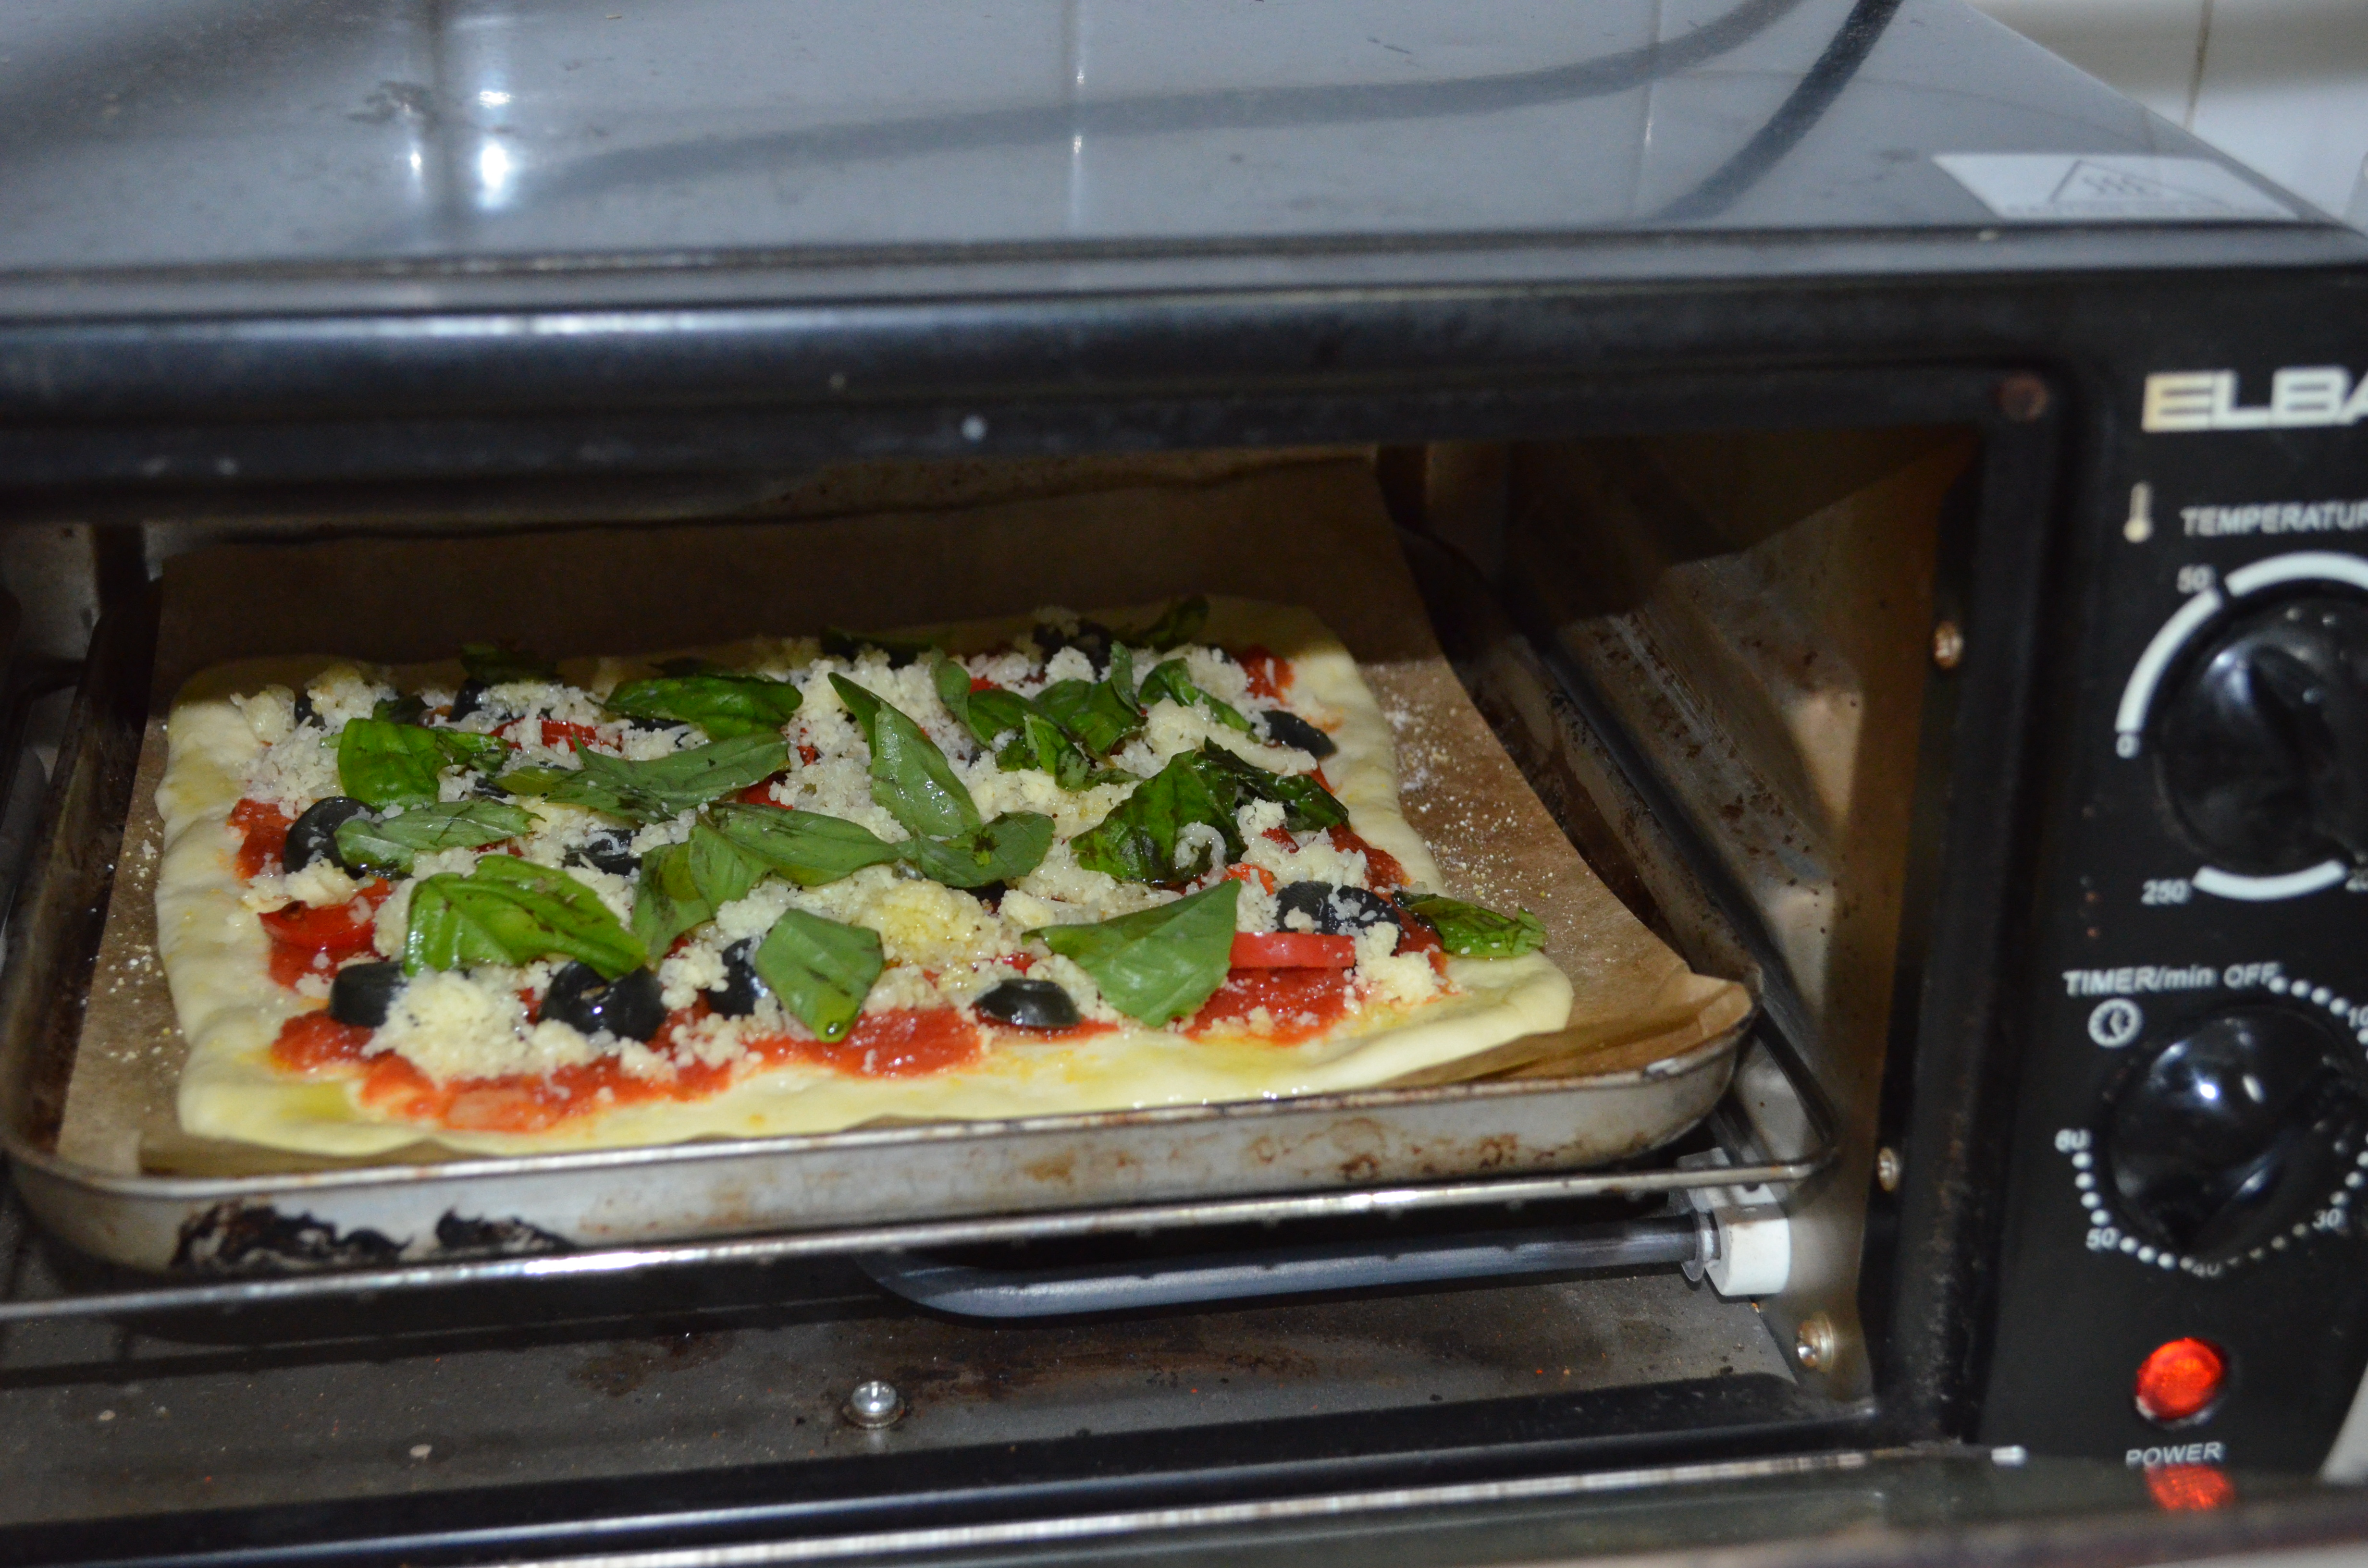 You can even use a toaster oven to bake the pizza!